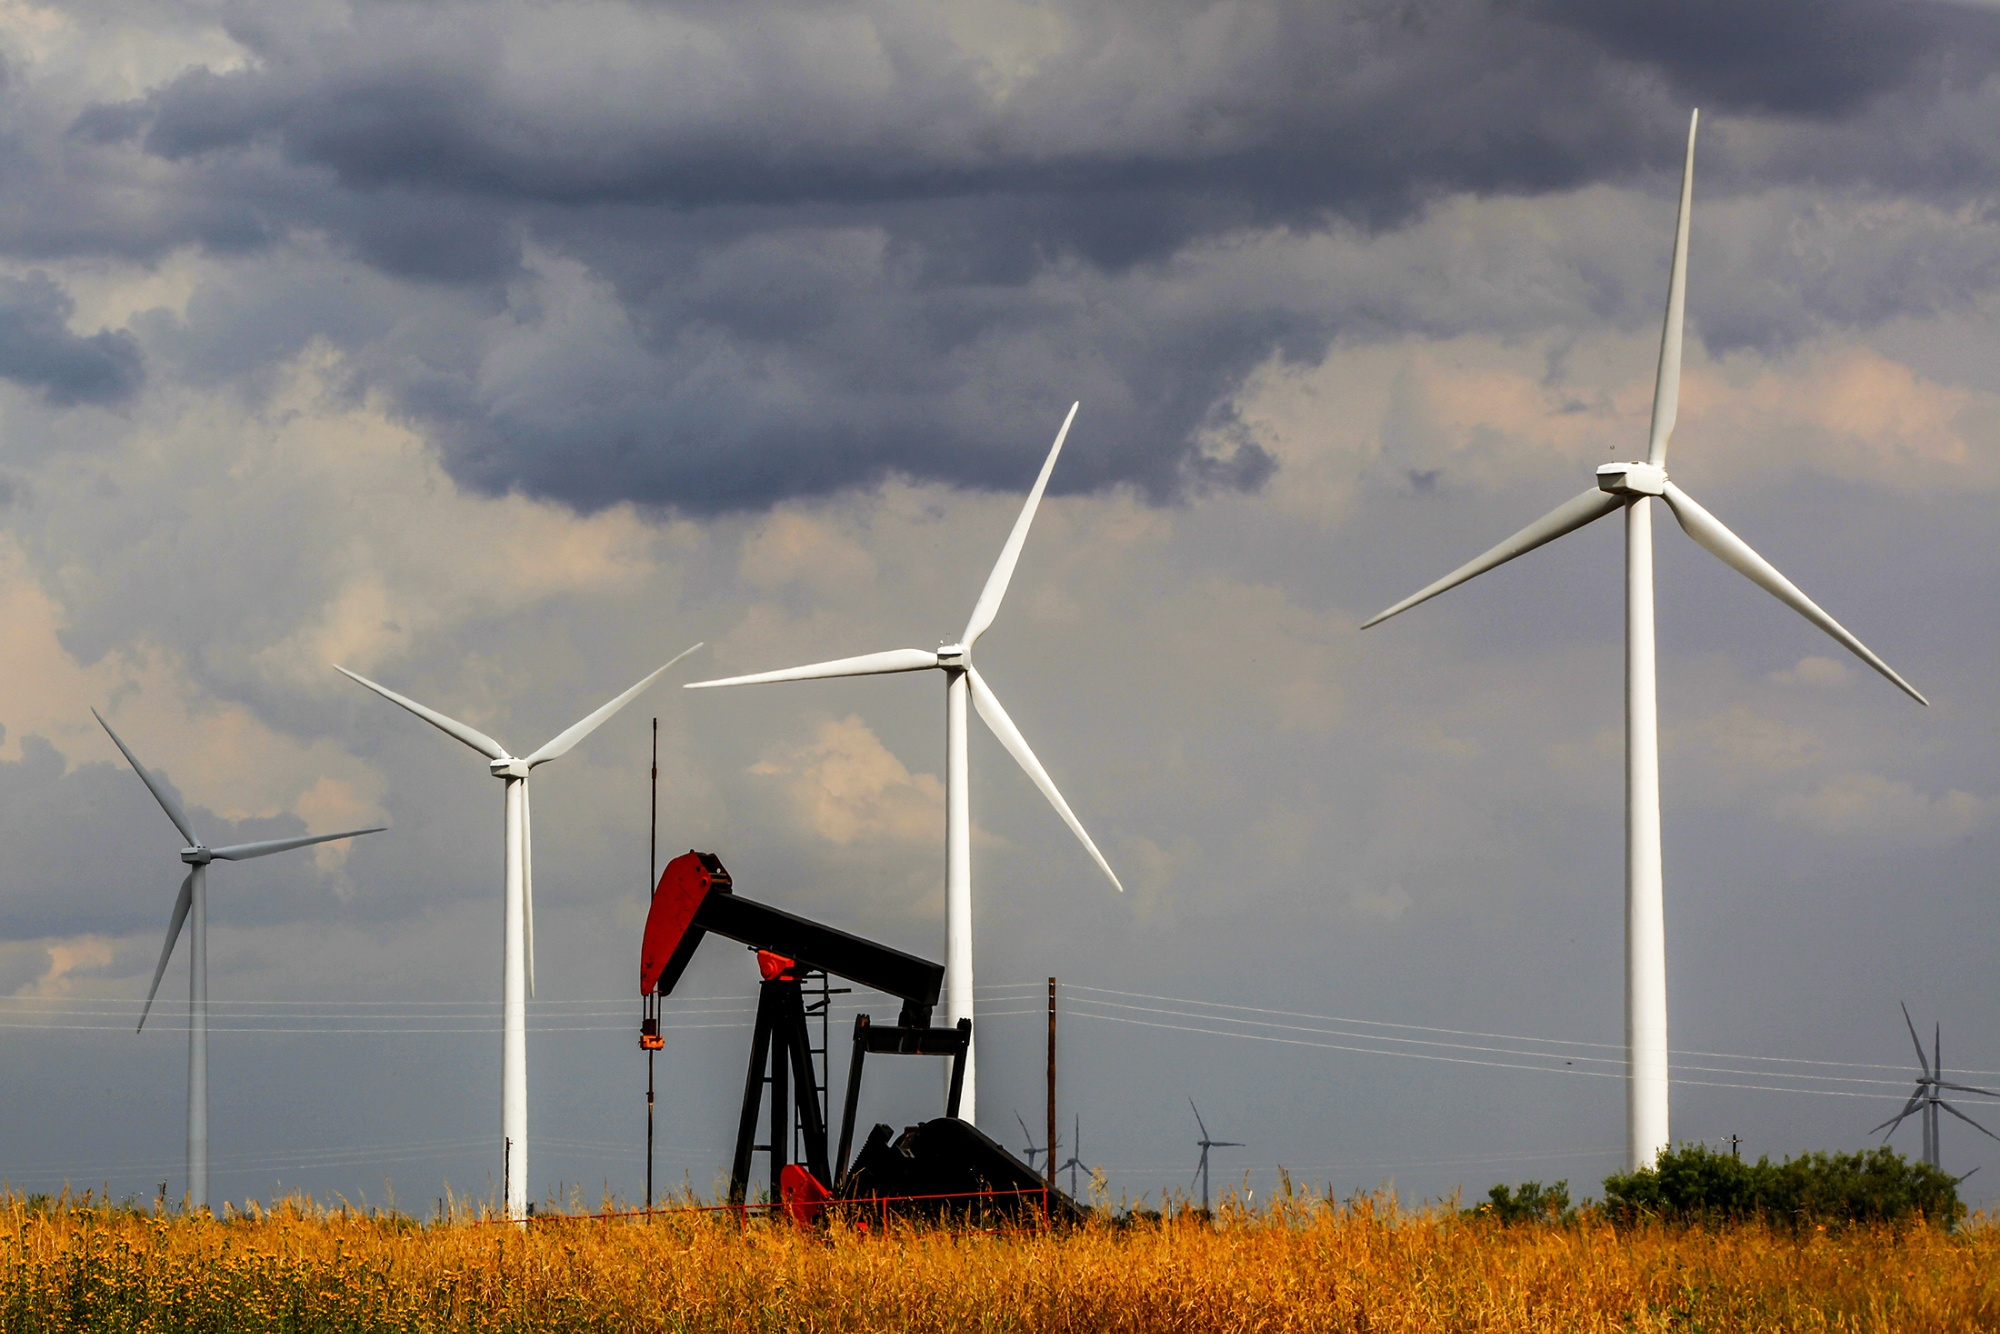 A pumpjack in front of wind turbines in West Texas.